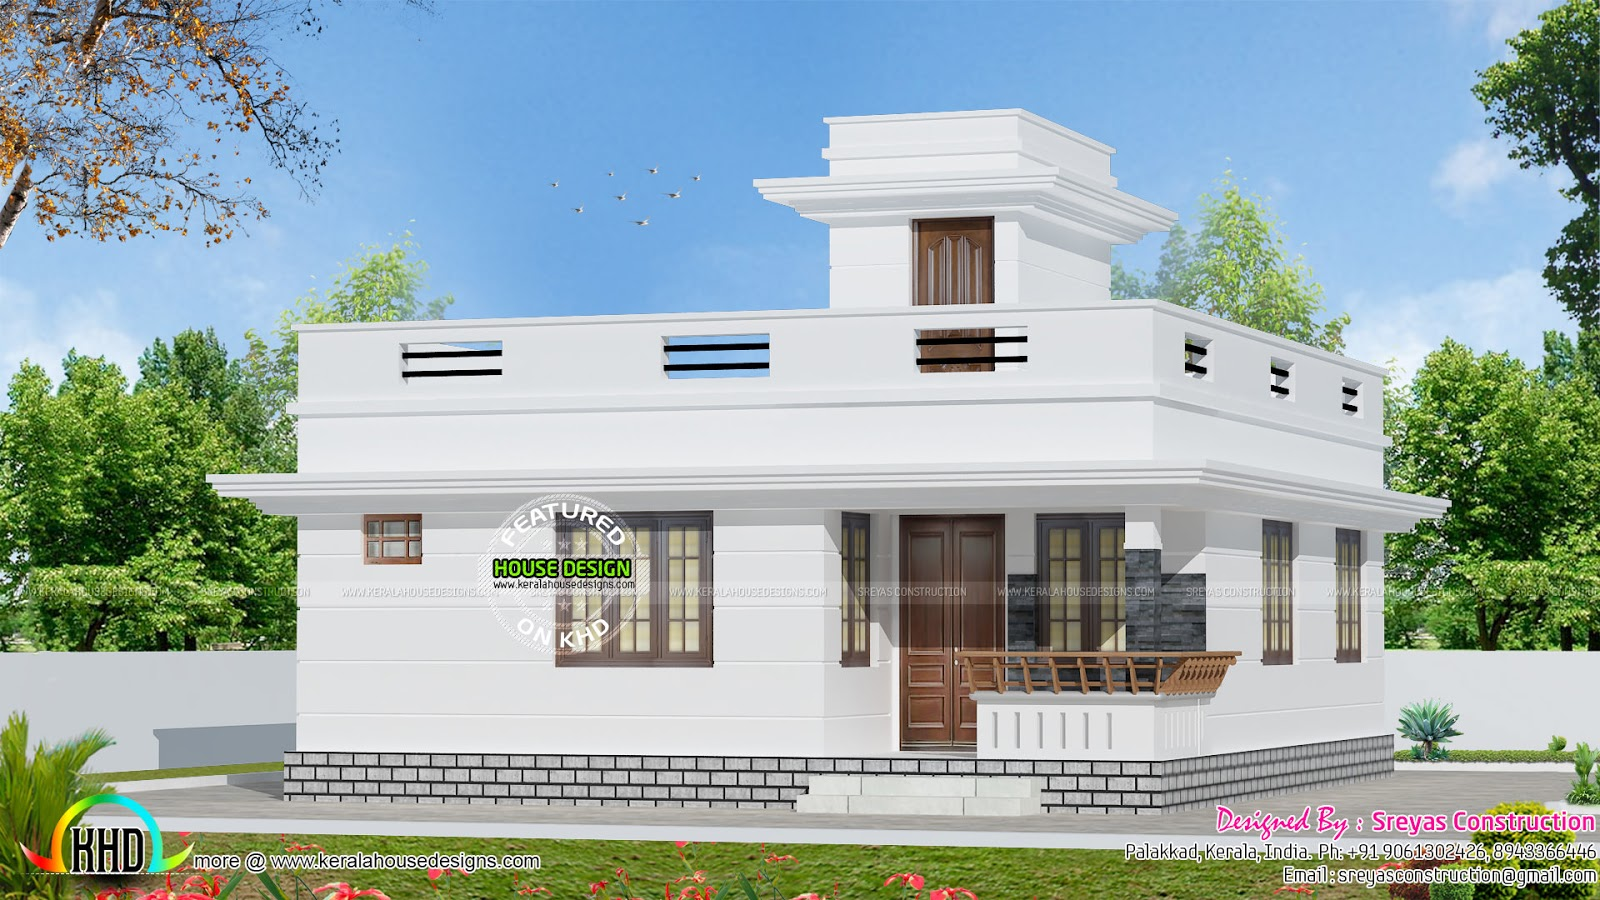 882 sq ft small house architecture kerala home design for Small house architecture